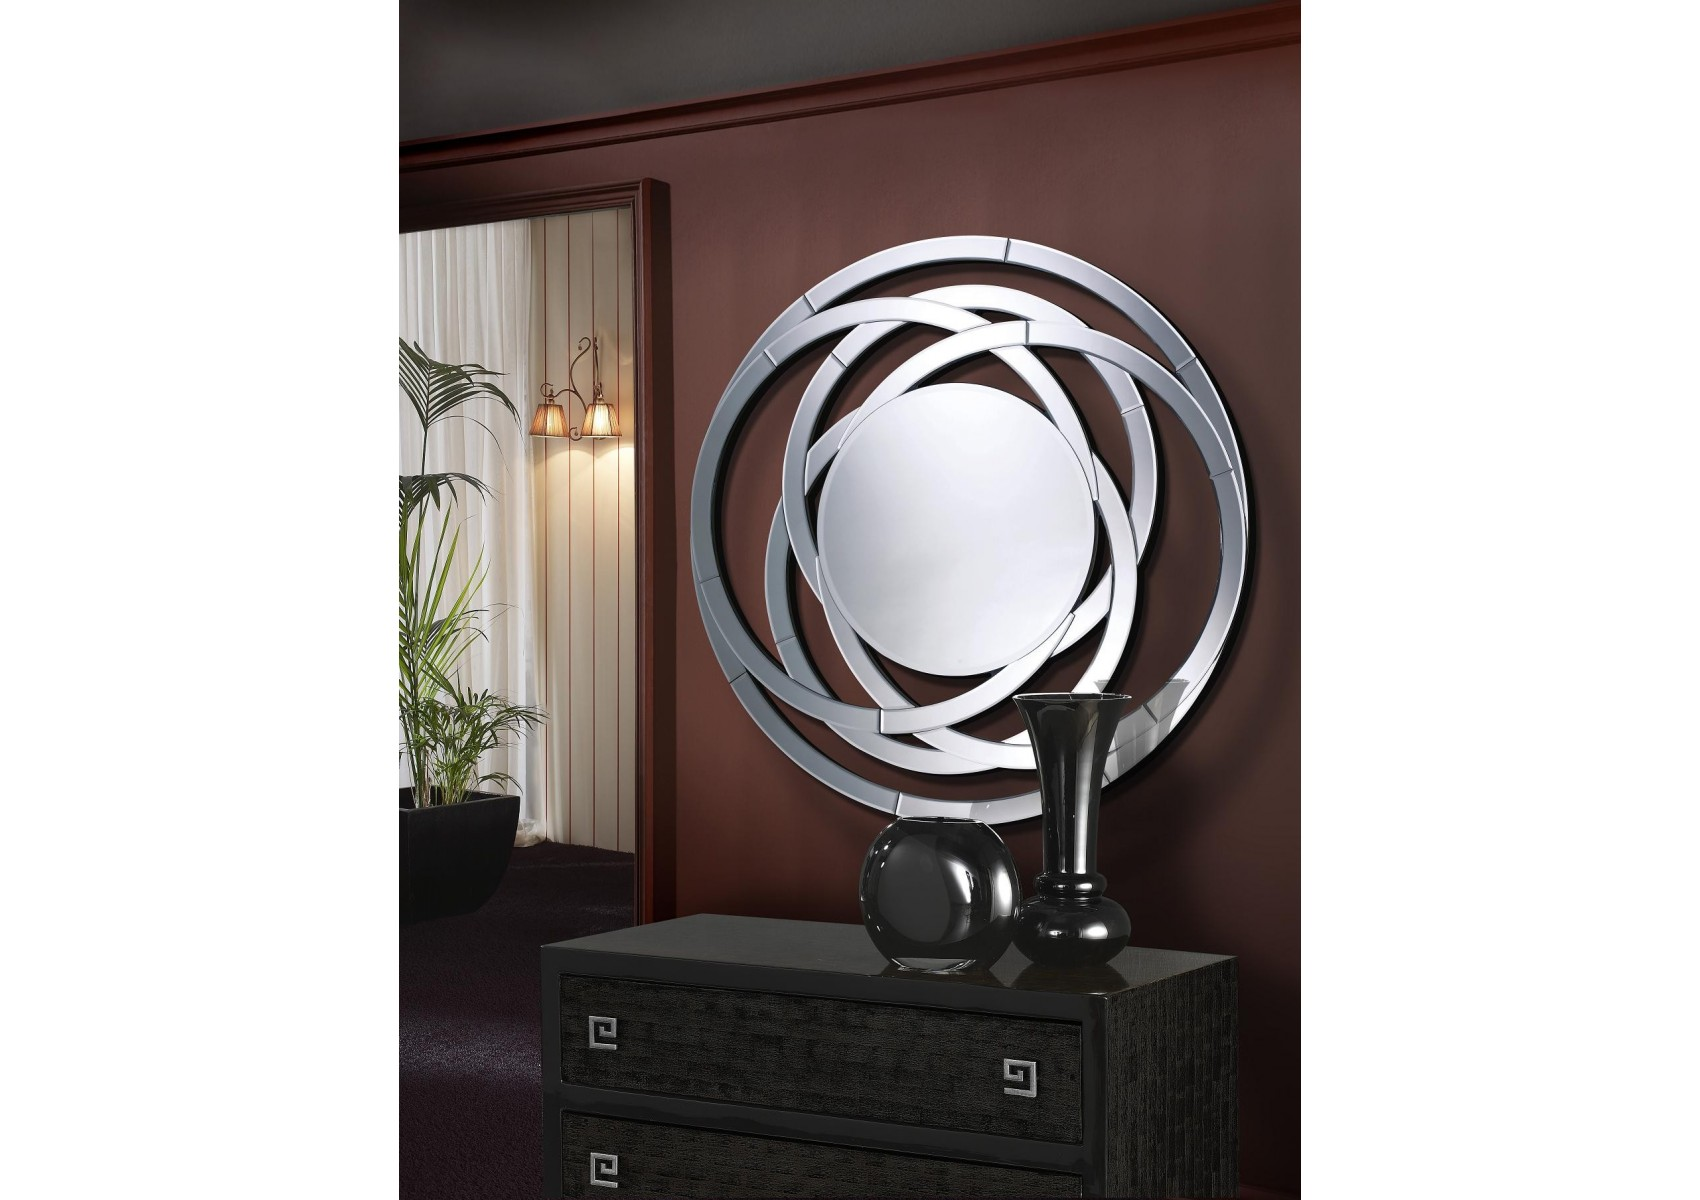 Miroir rond design de la collection aros de chez schuller for Miroir design rond